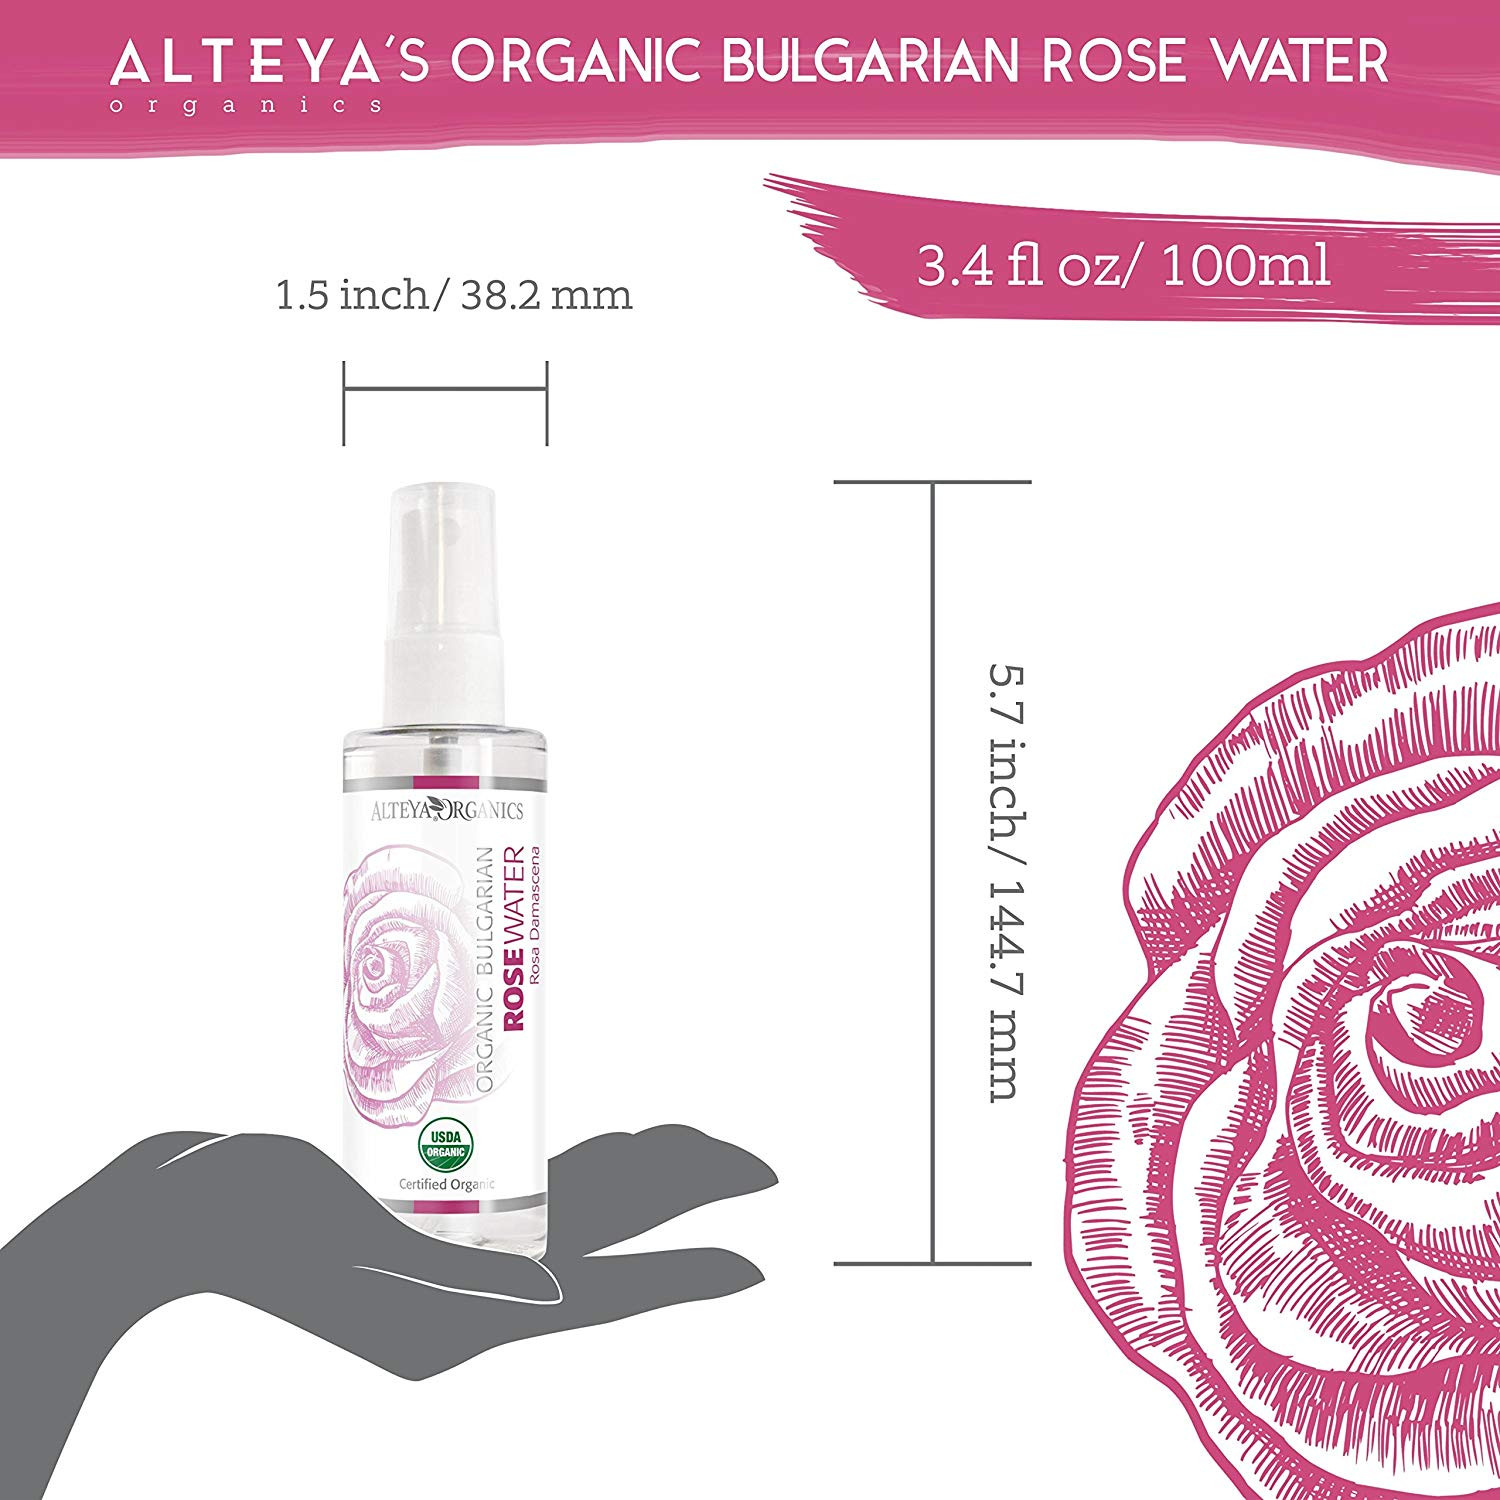 Alteya Organic Rose Water Spray 100ml USDA Certified Organic Authentic Pure Natural Rosa Damascena Flower Water Steam Distilled and Sold Directly by